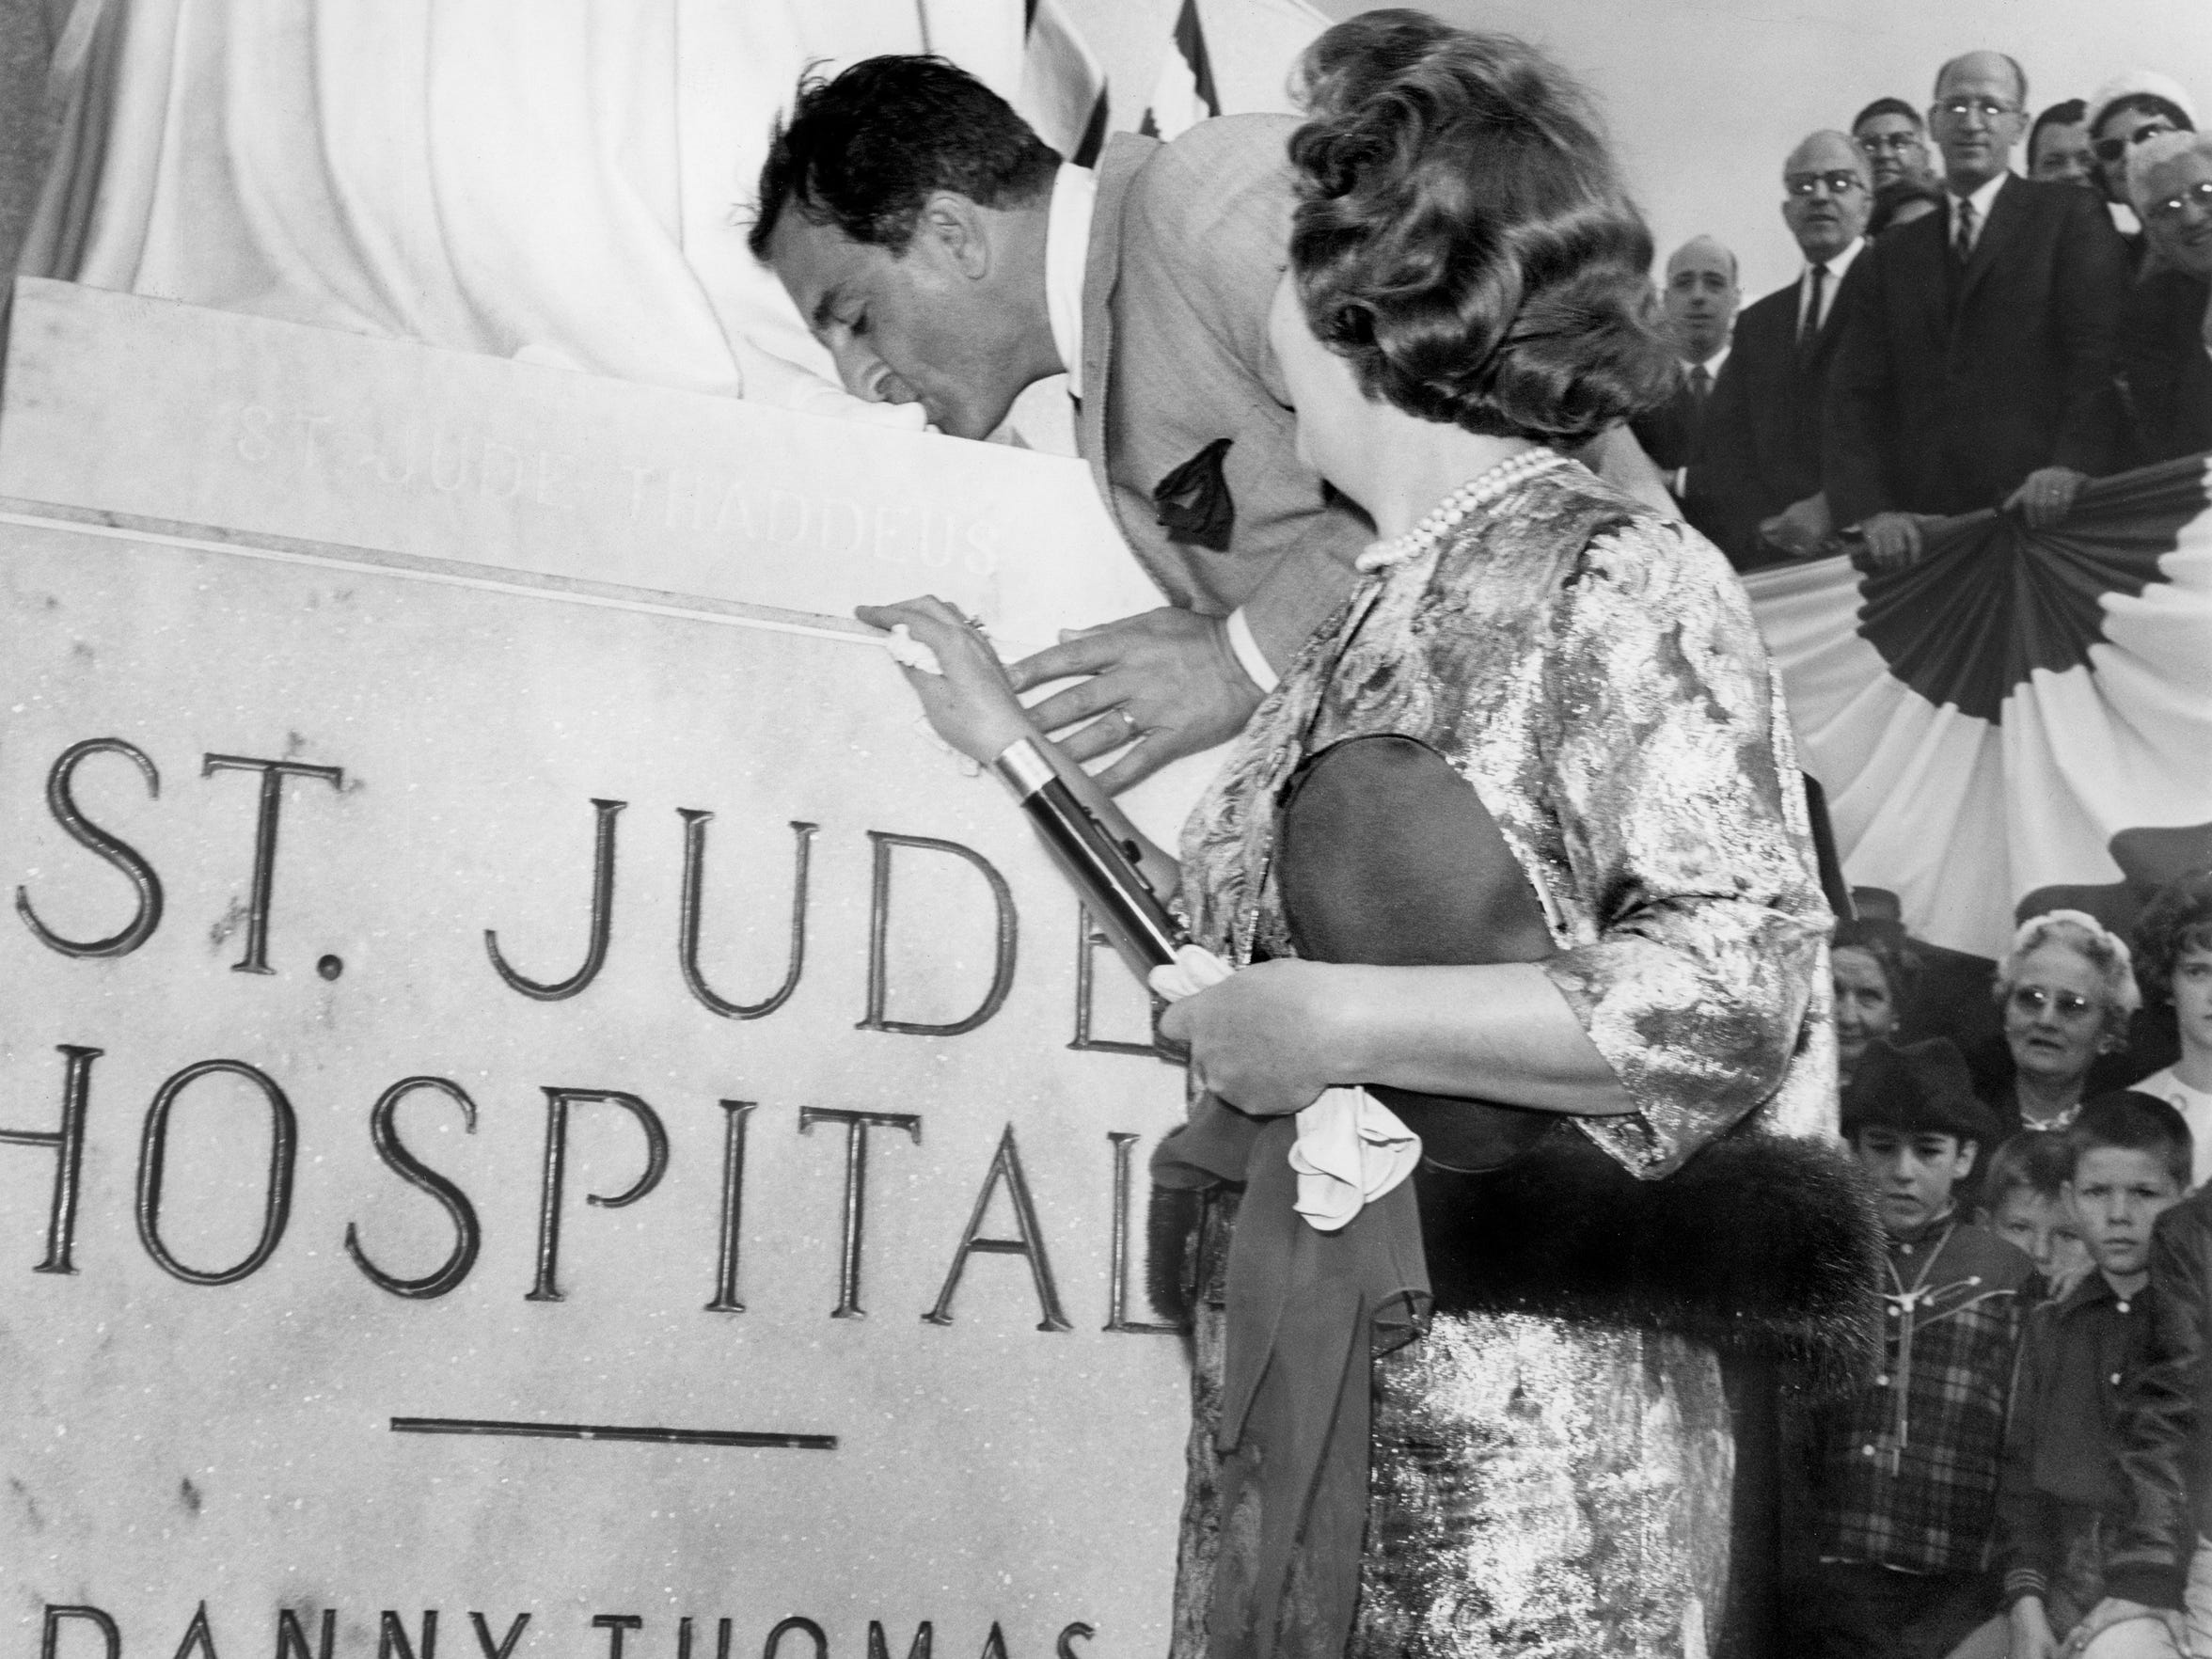 Danny Thomas kisses the toe of St. Jude Thaddeus as